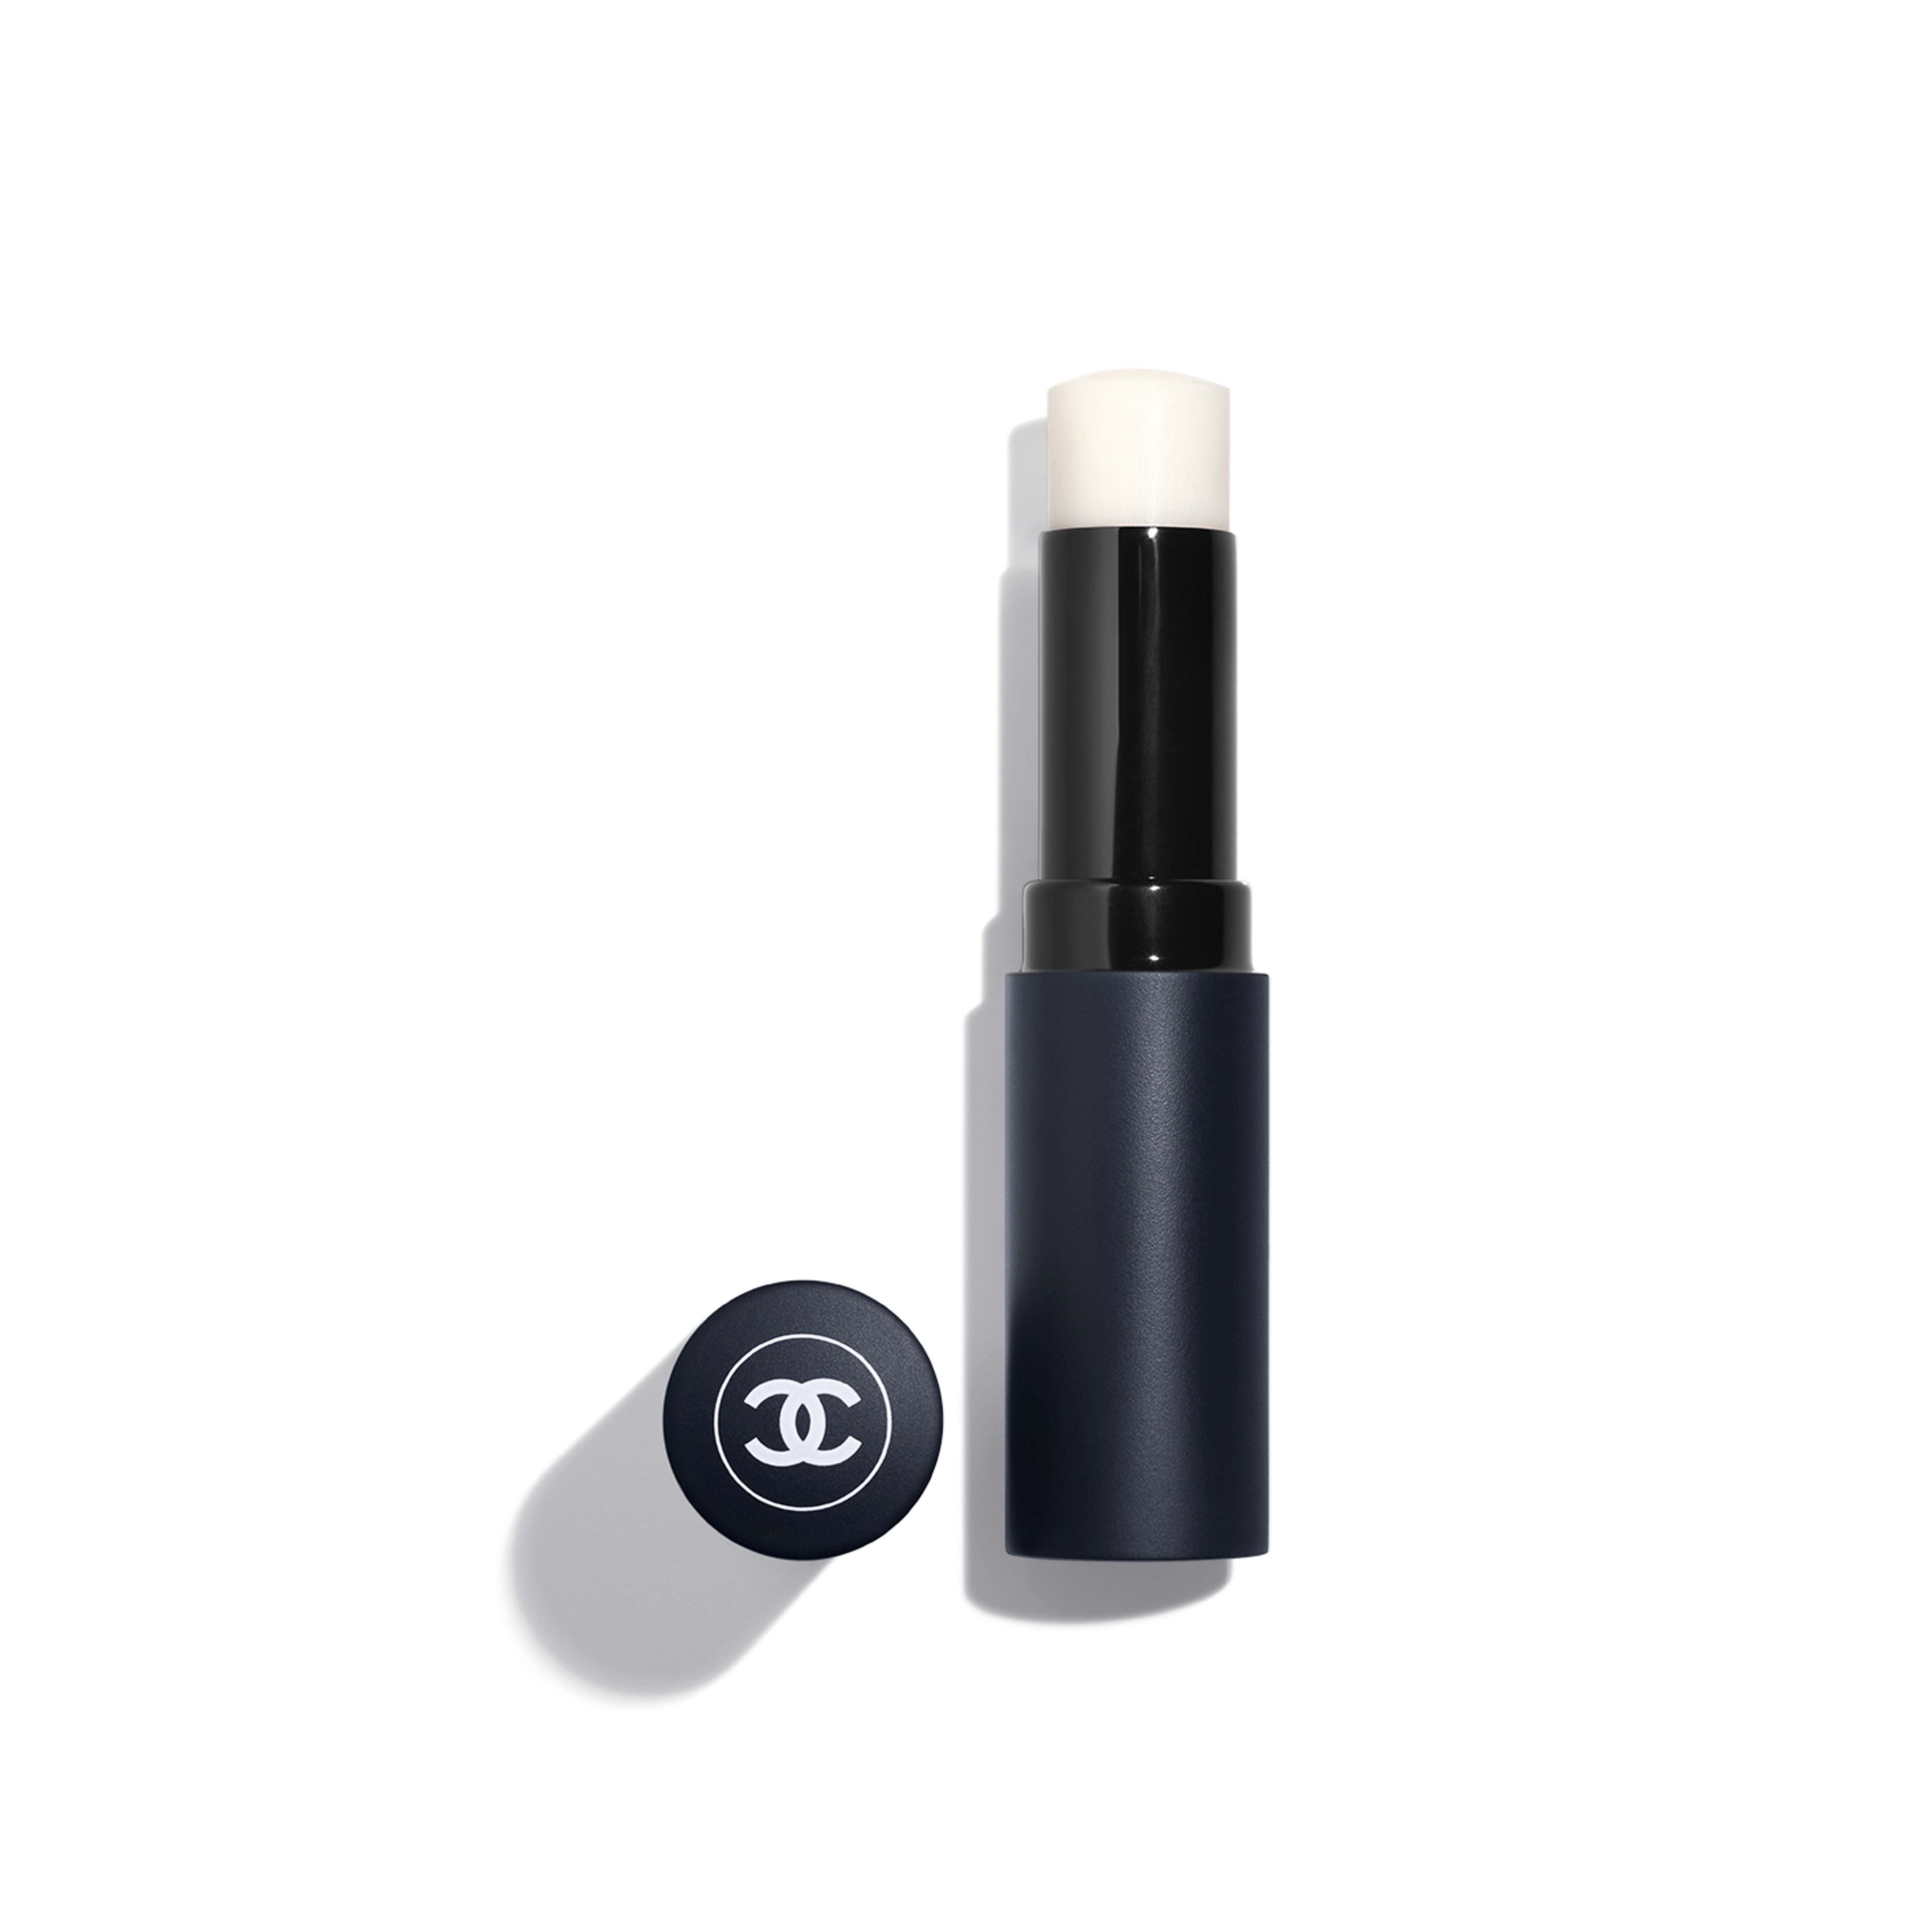 BOY DE CHANEL LIP BALM - makeup - 3g - Default view